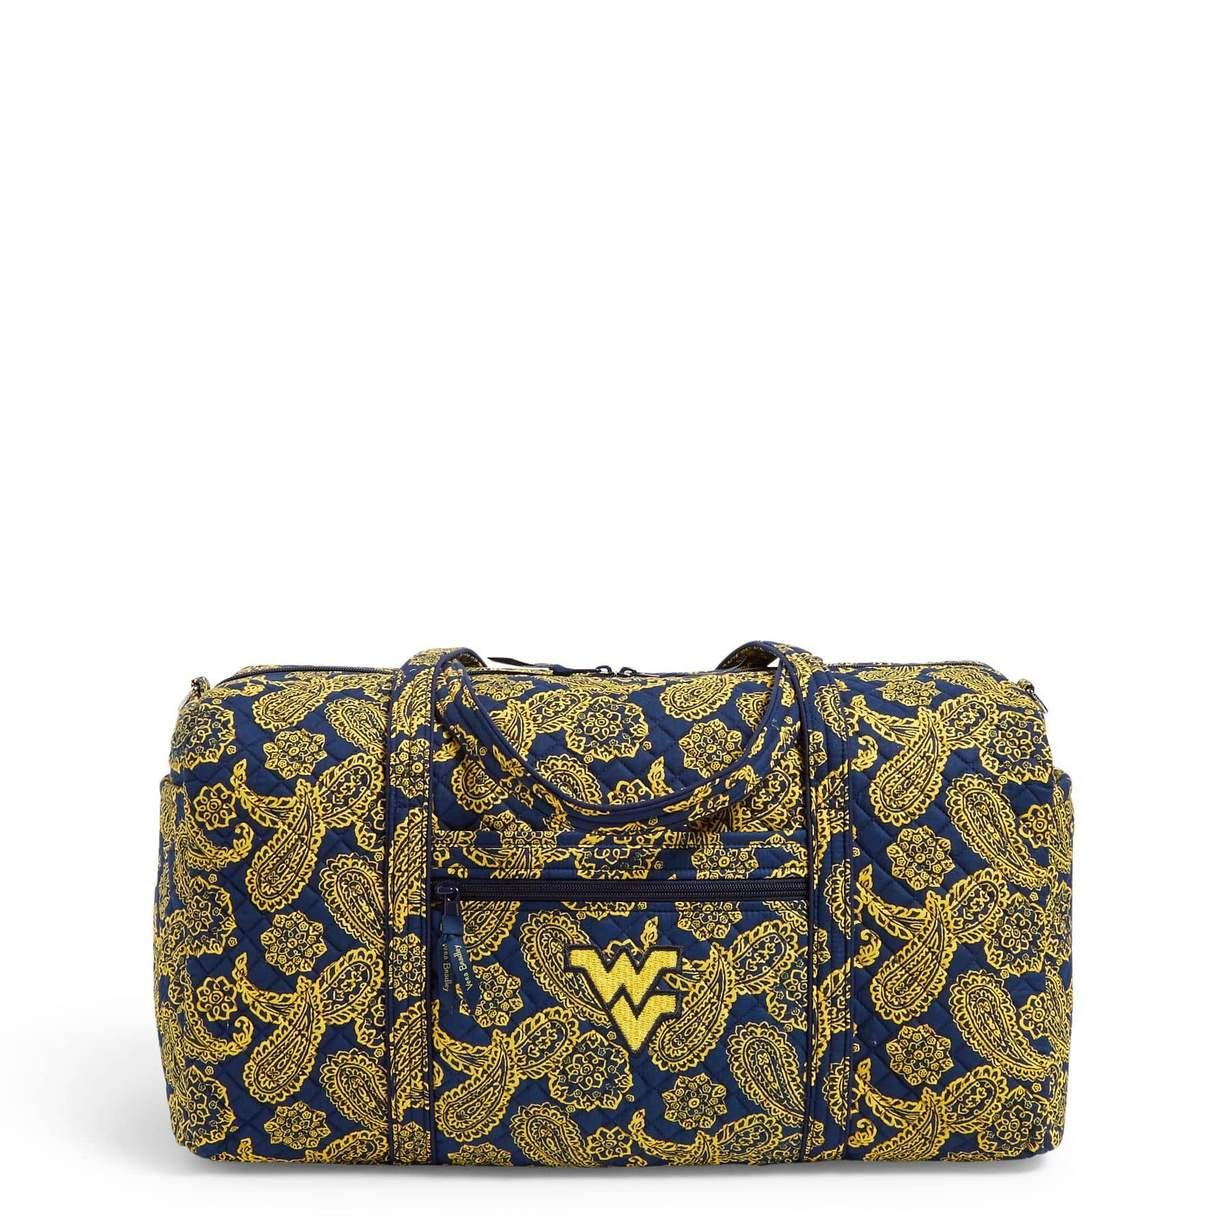 West Virginia Duffle Bag